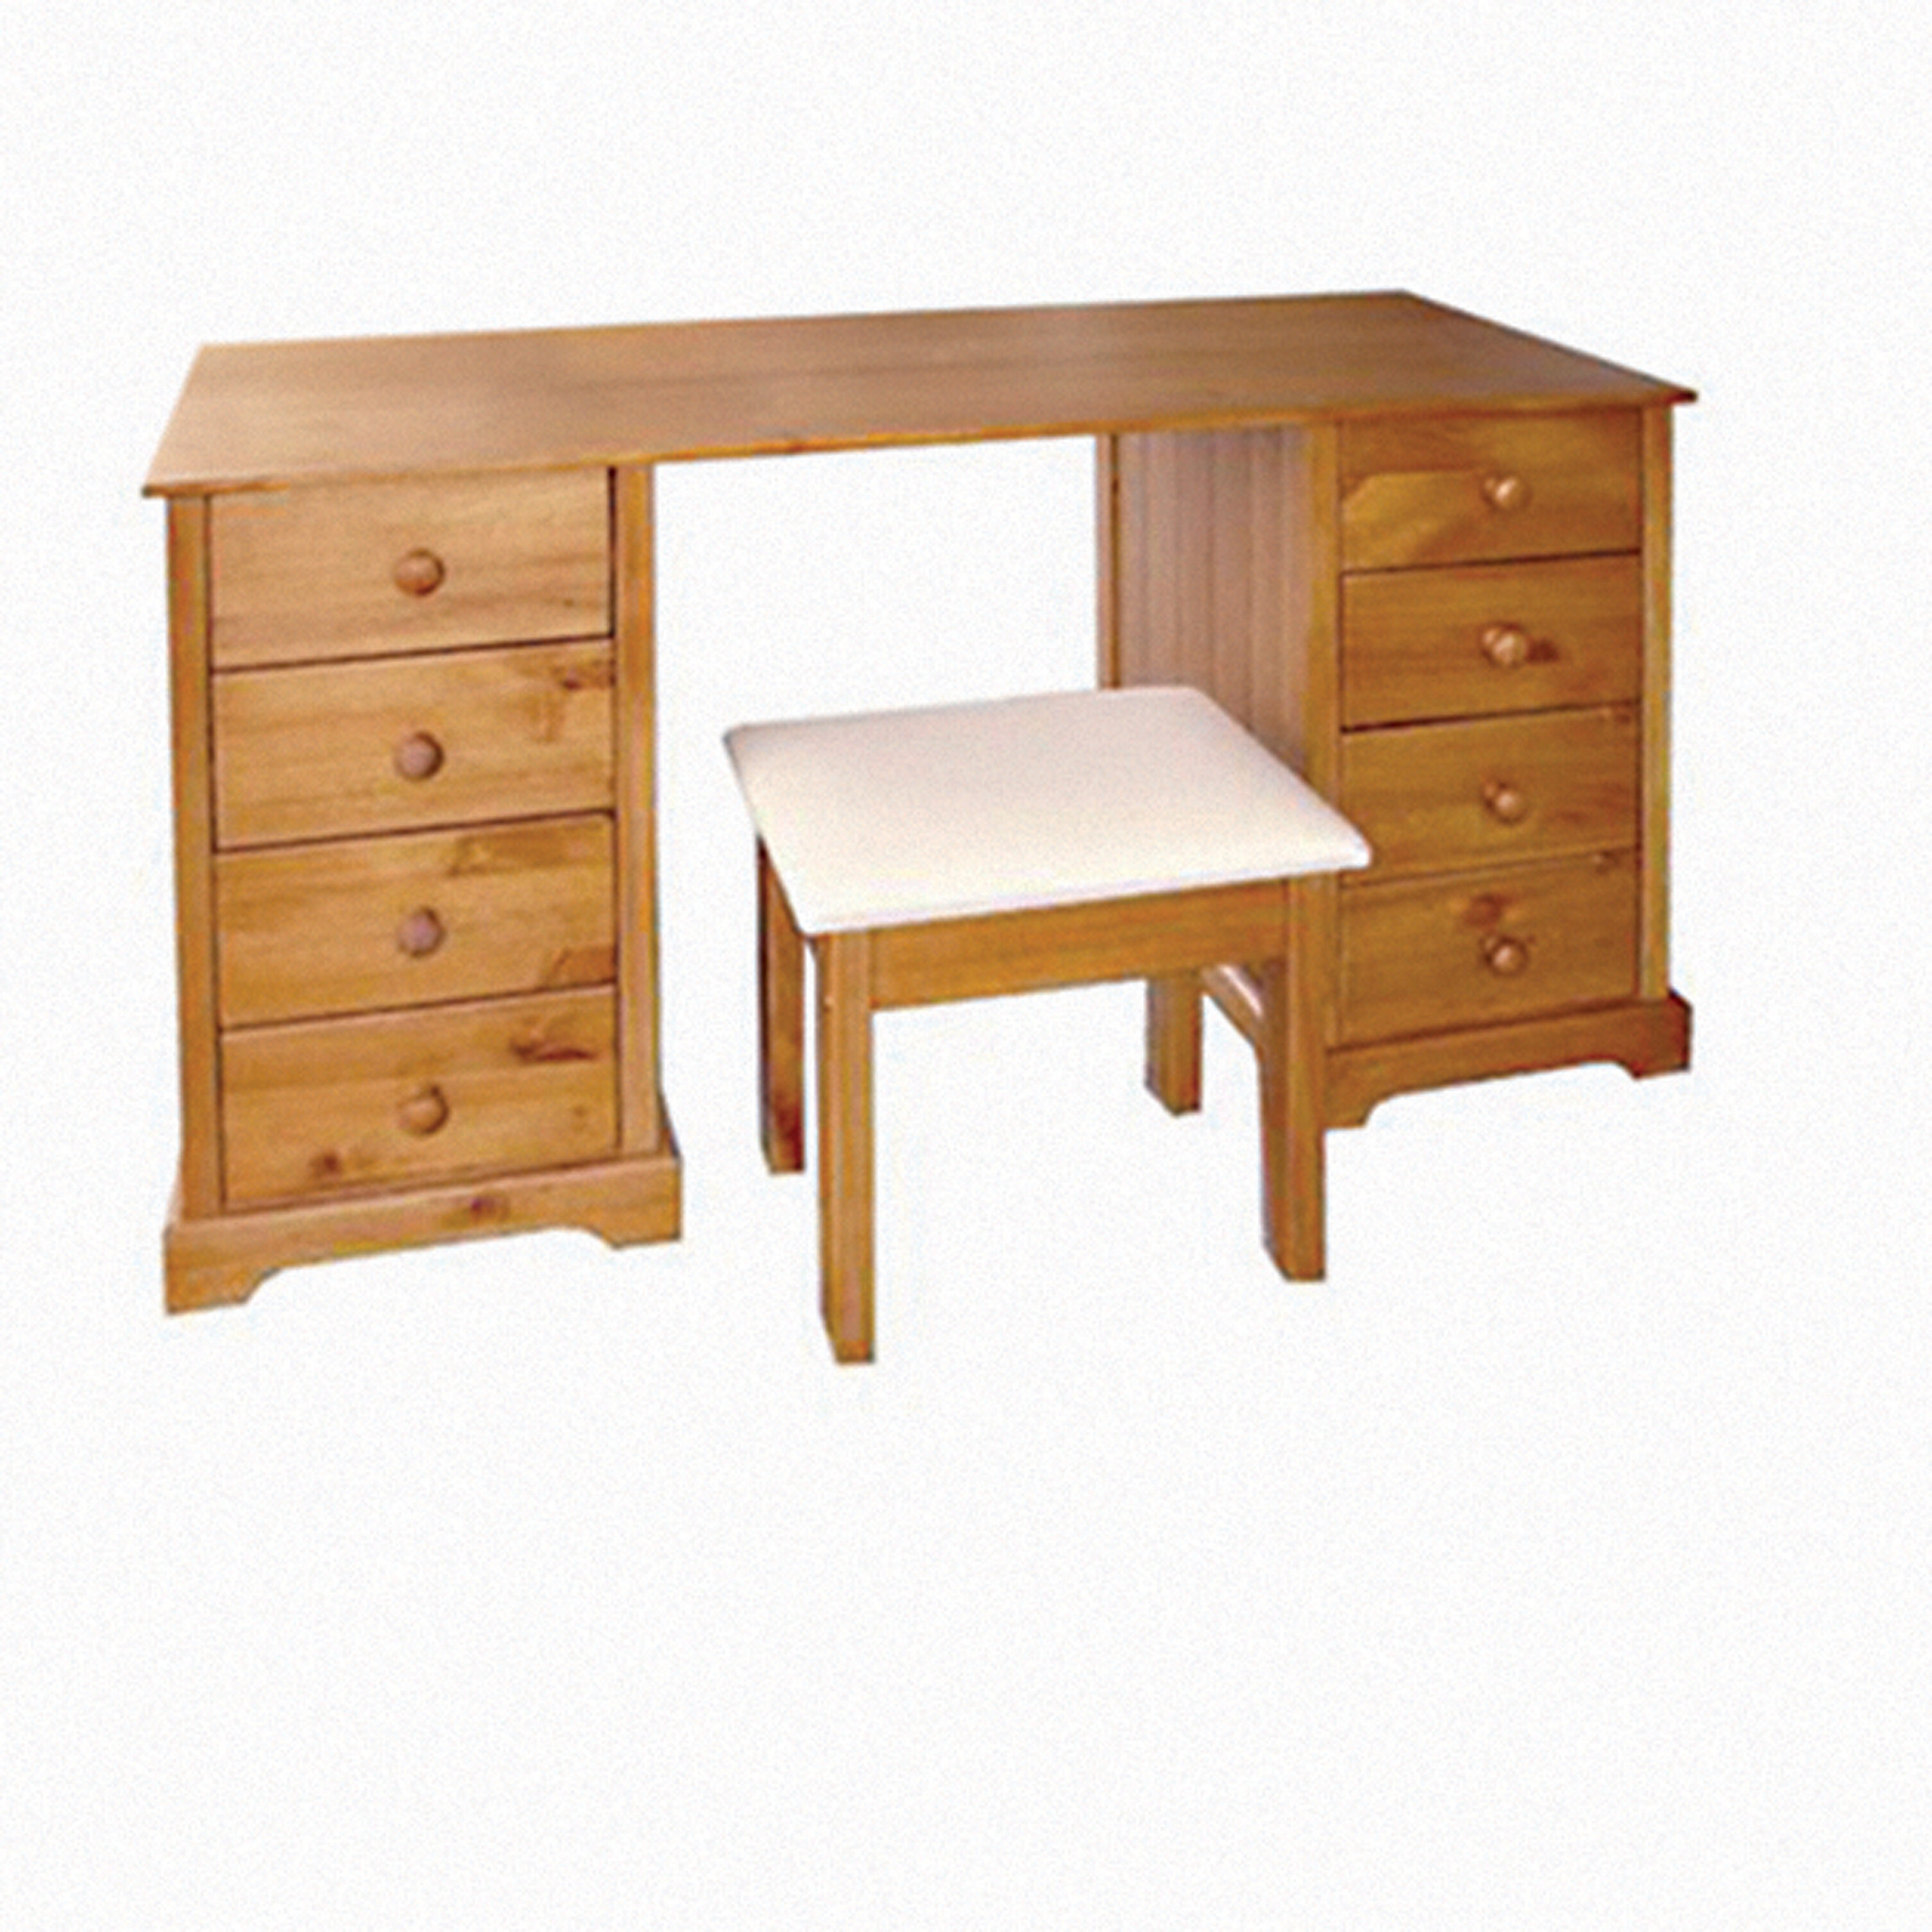 miskelly at furniture set drawer products samuel by drawers lawrence w tray item number diva jewelry dresser